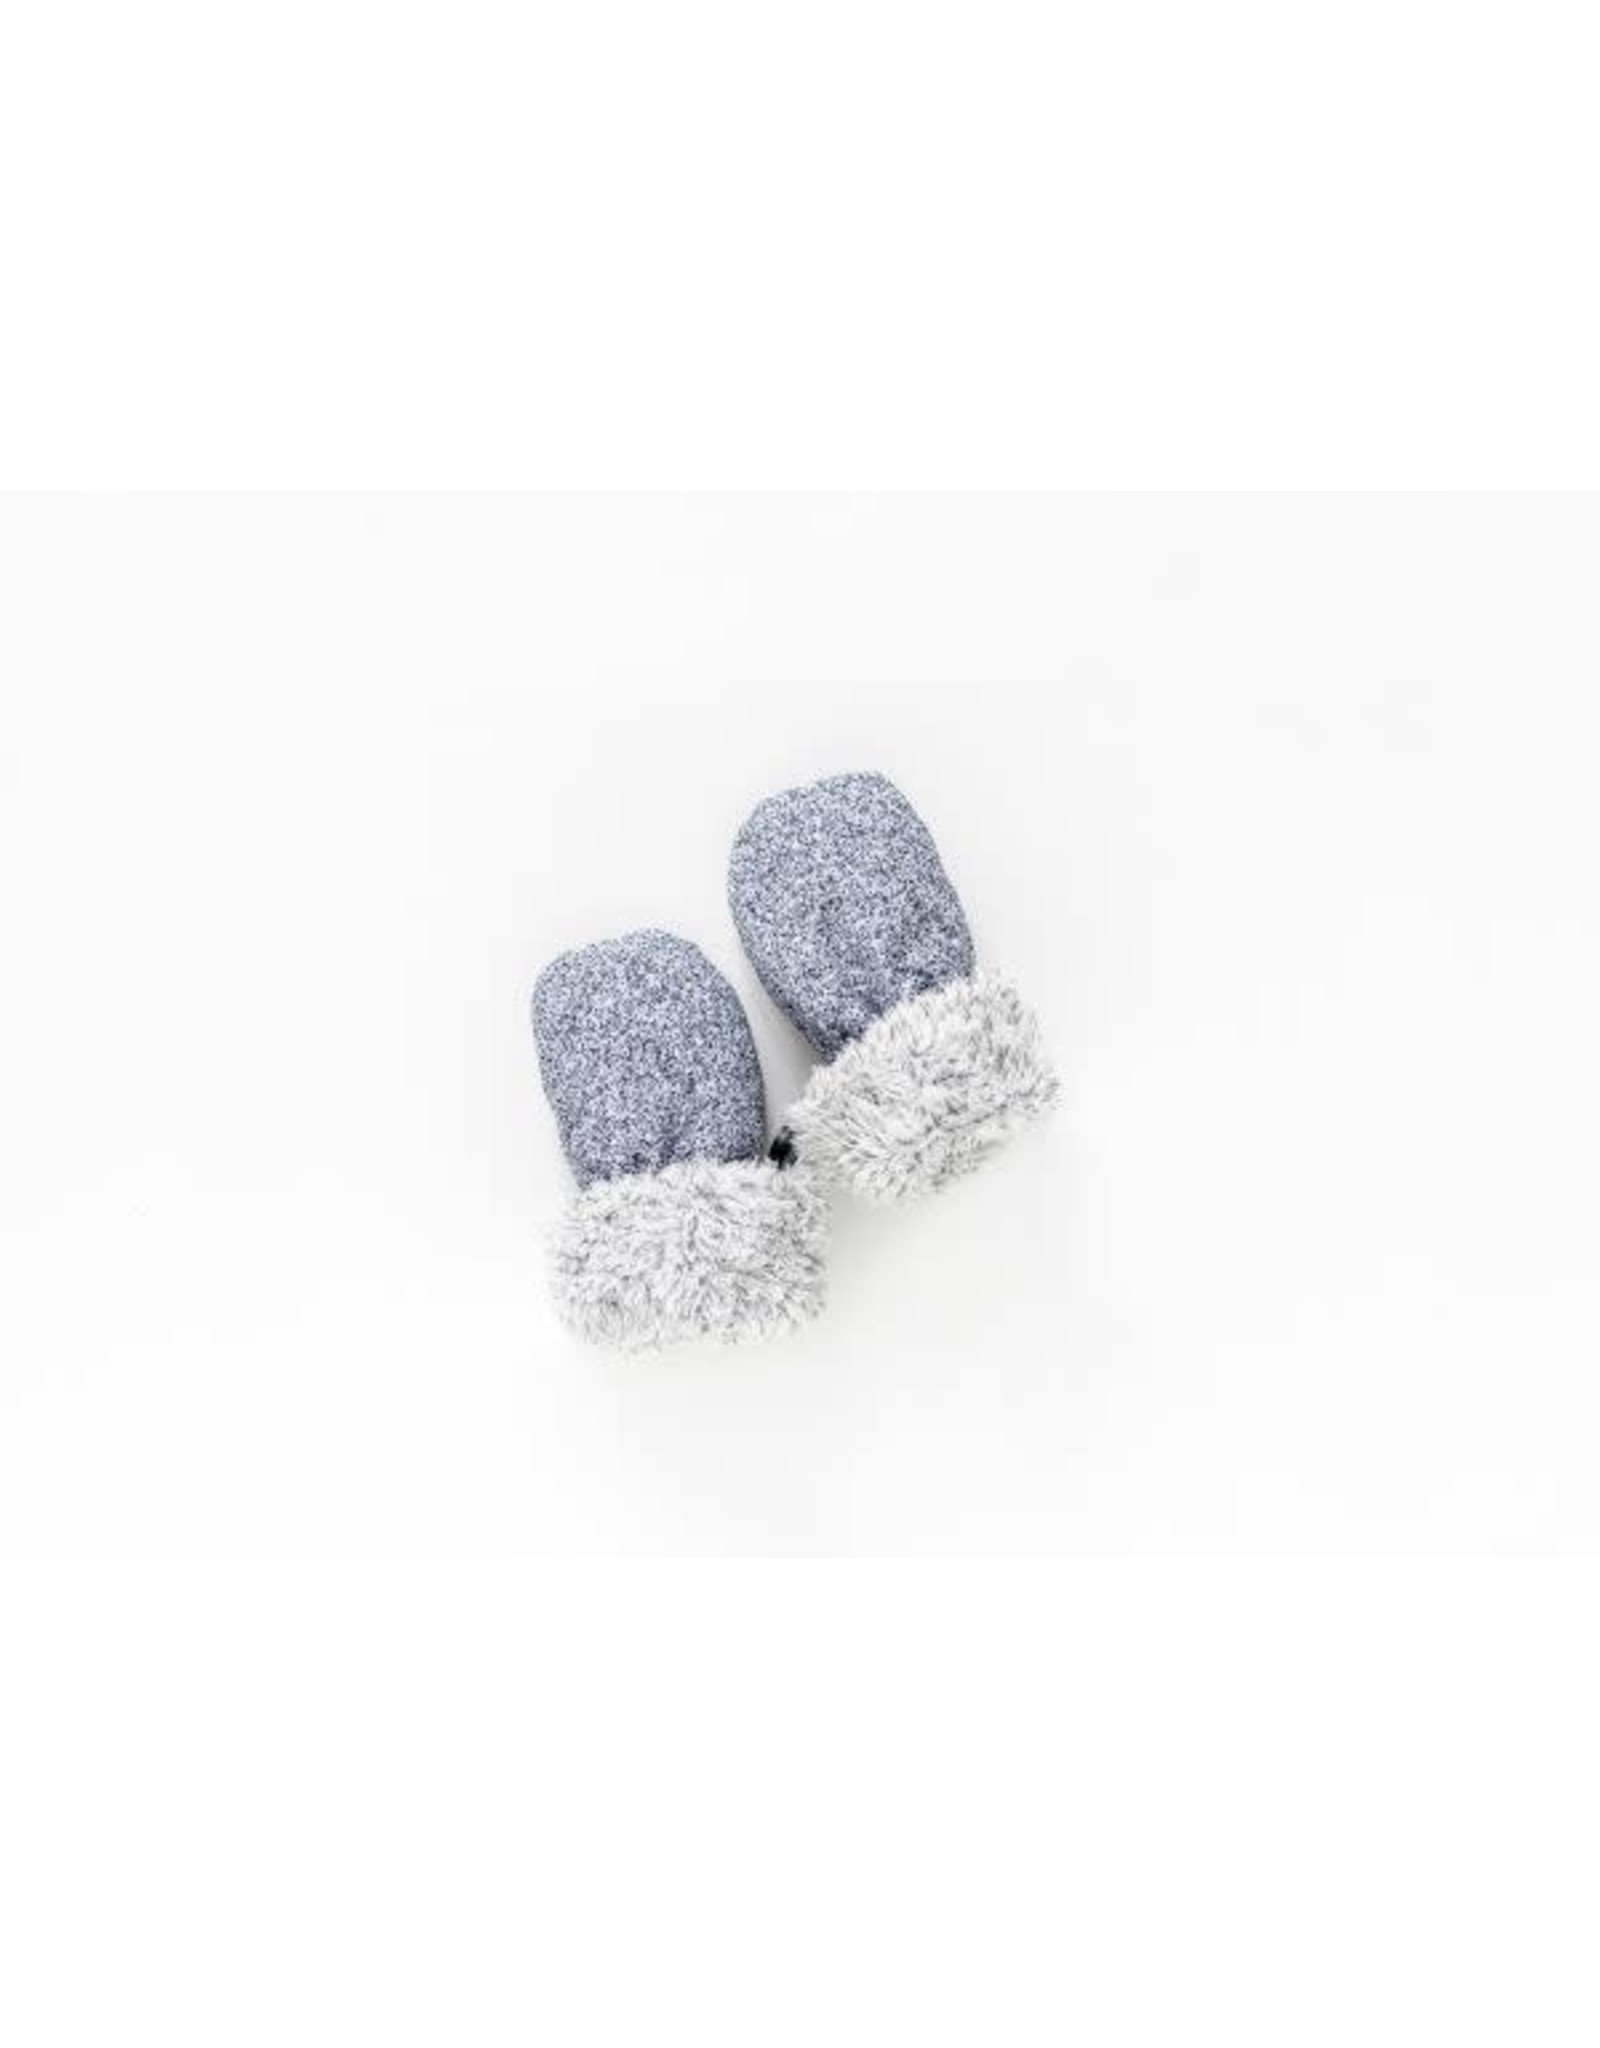 Juddlies Juddlies Winter Mitts Salt & Pepper Grey 0-6M